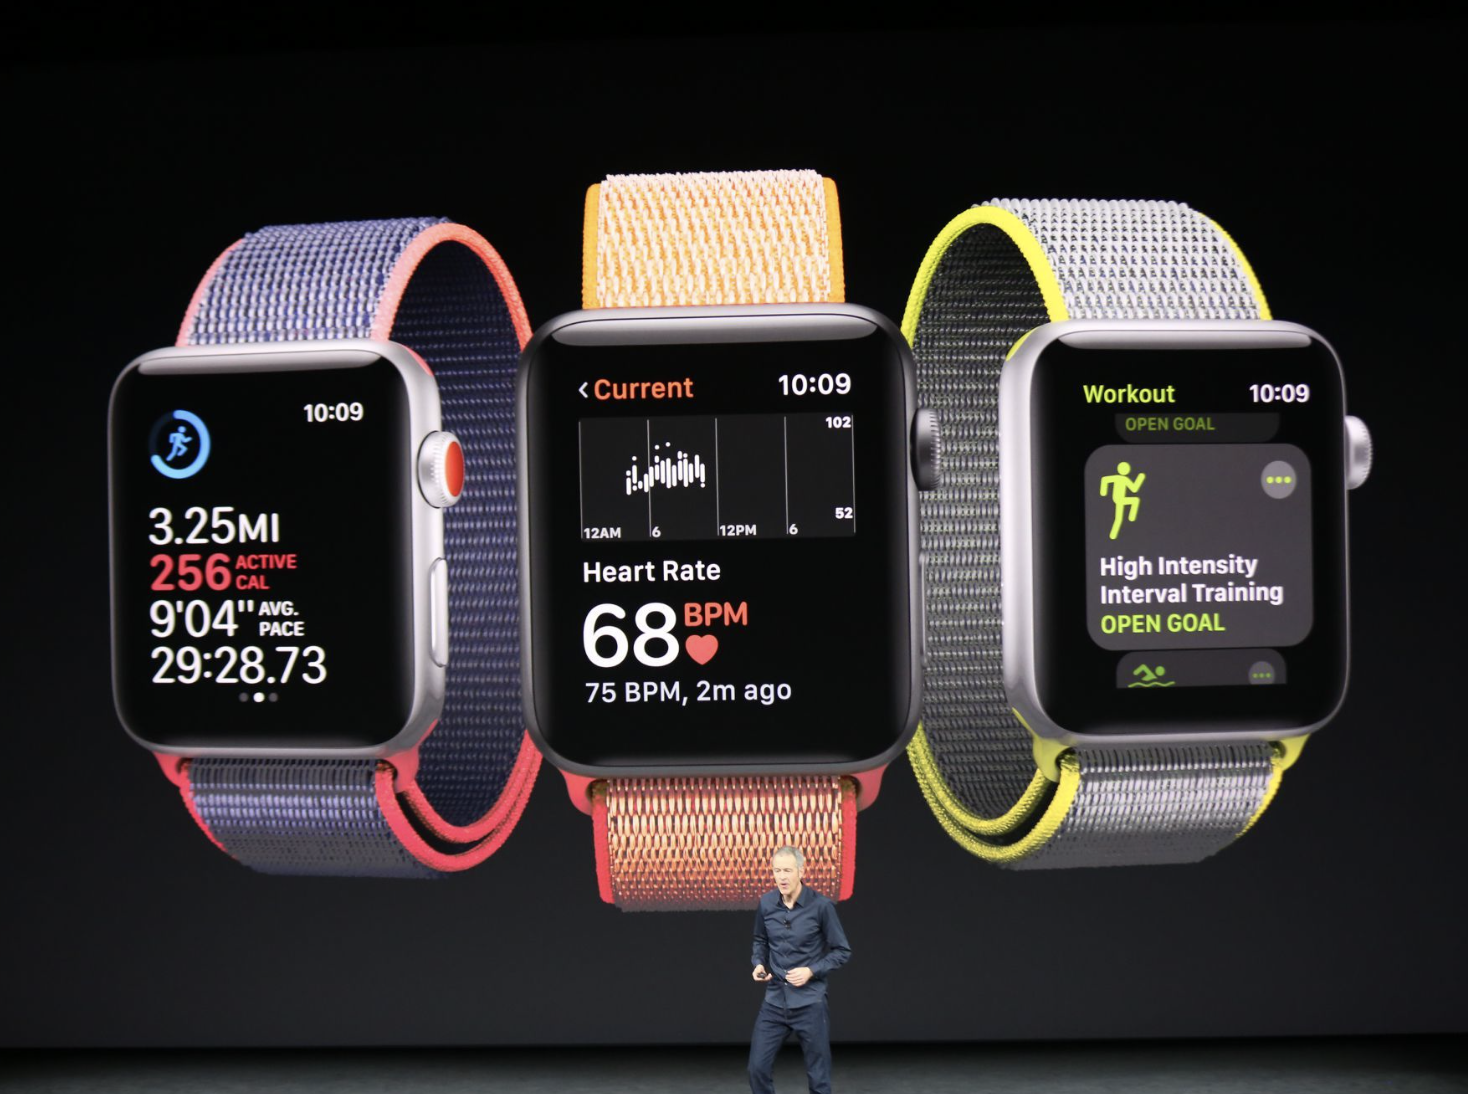 Apple Watch series 3 details specs price release date September 2017 apple event waterproof untethered cellular signal